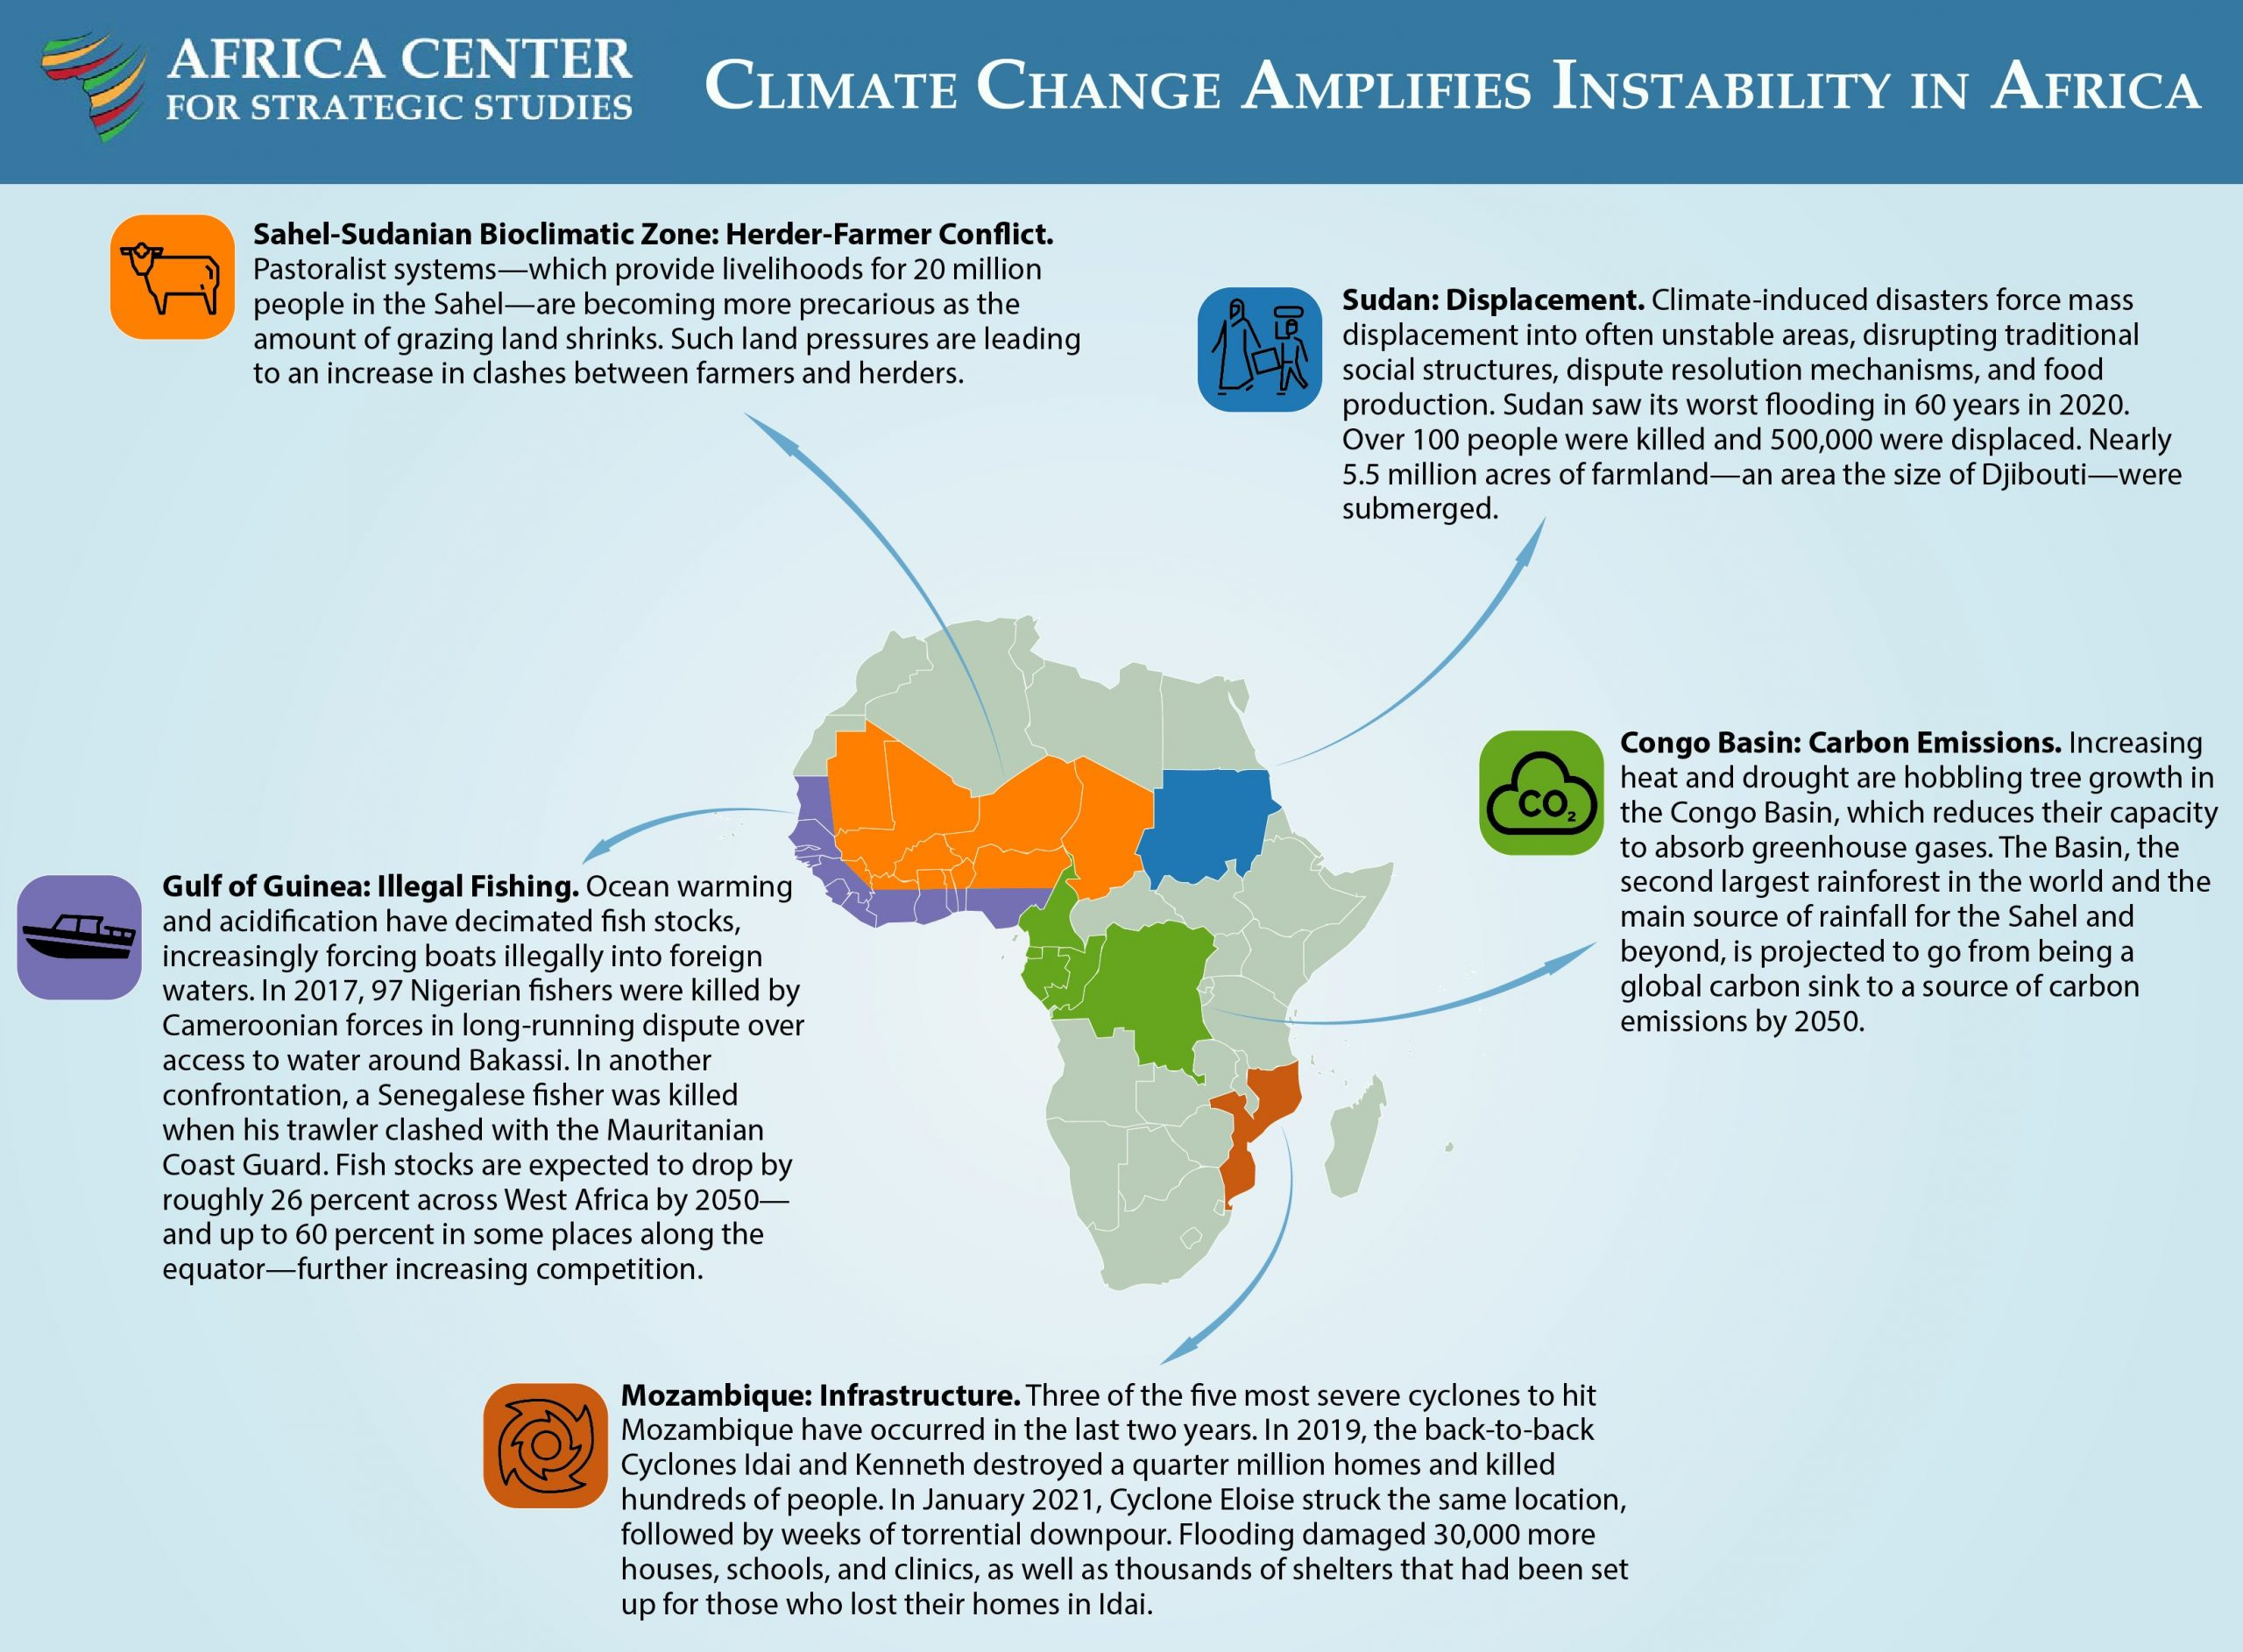 Climate Change Amplifies Instability in Africa